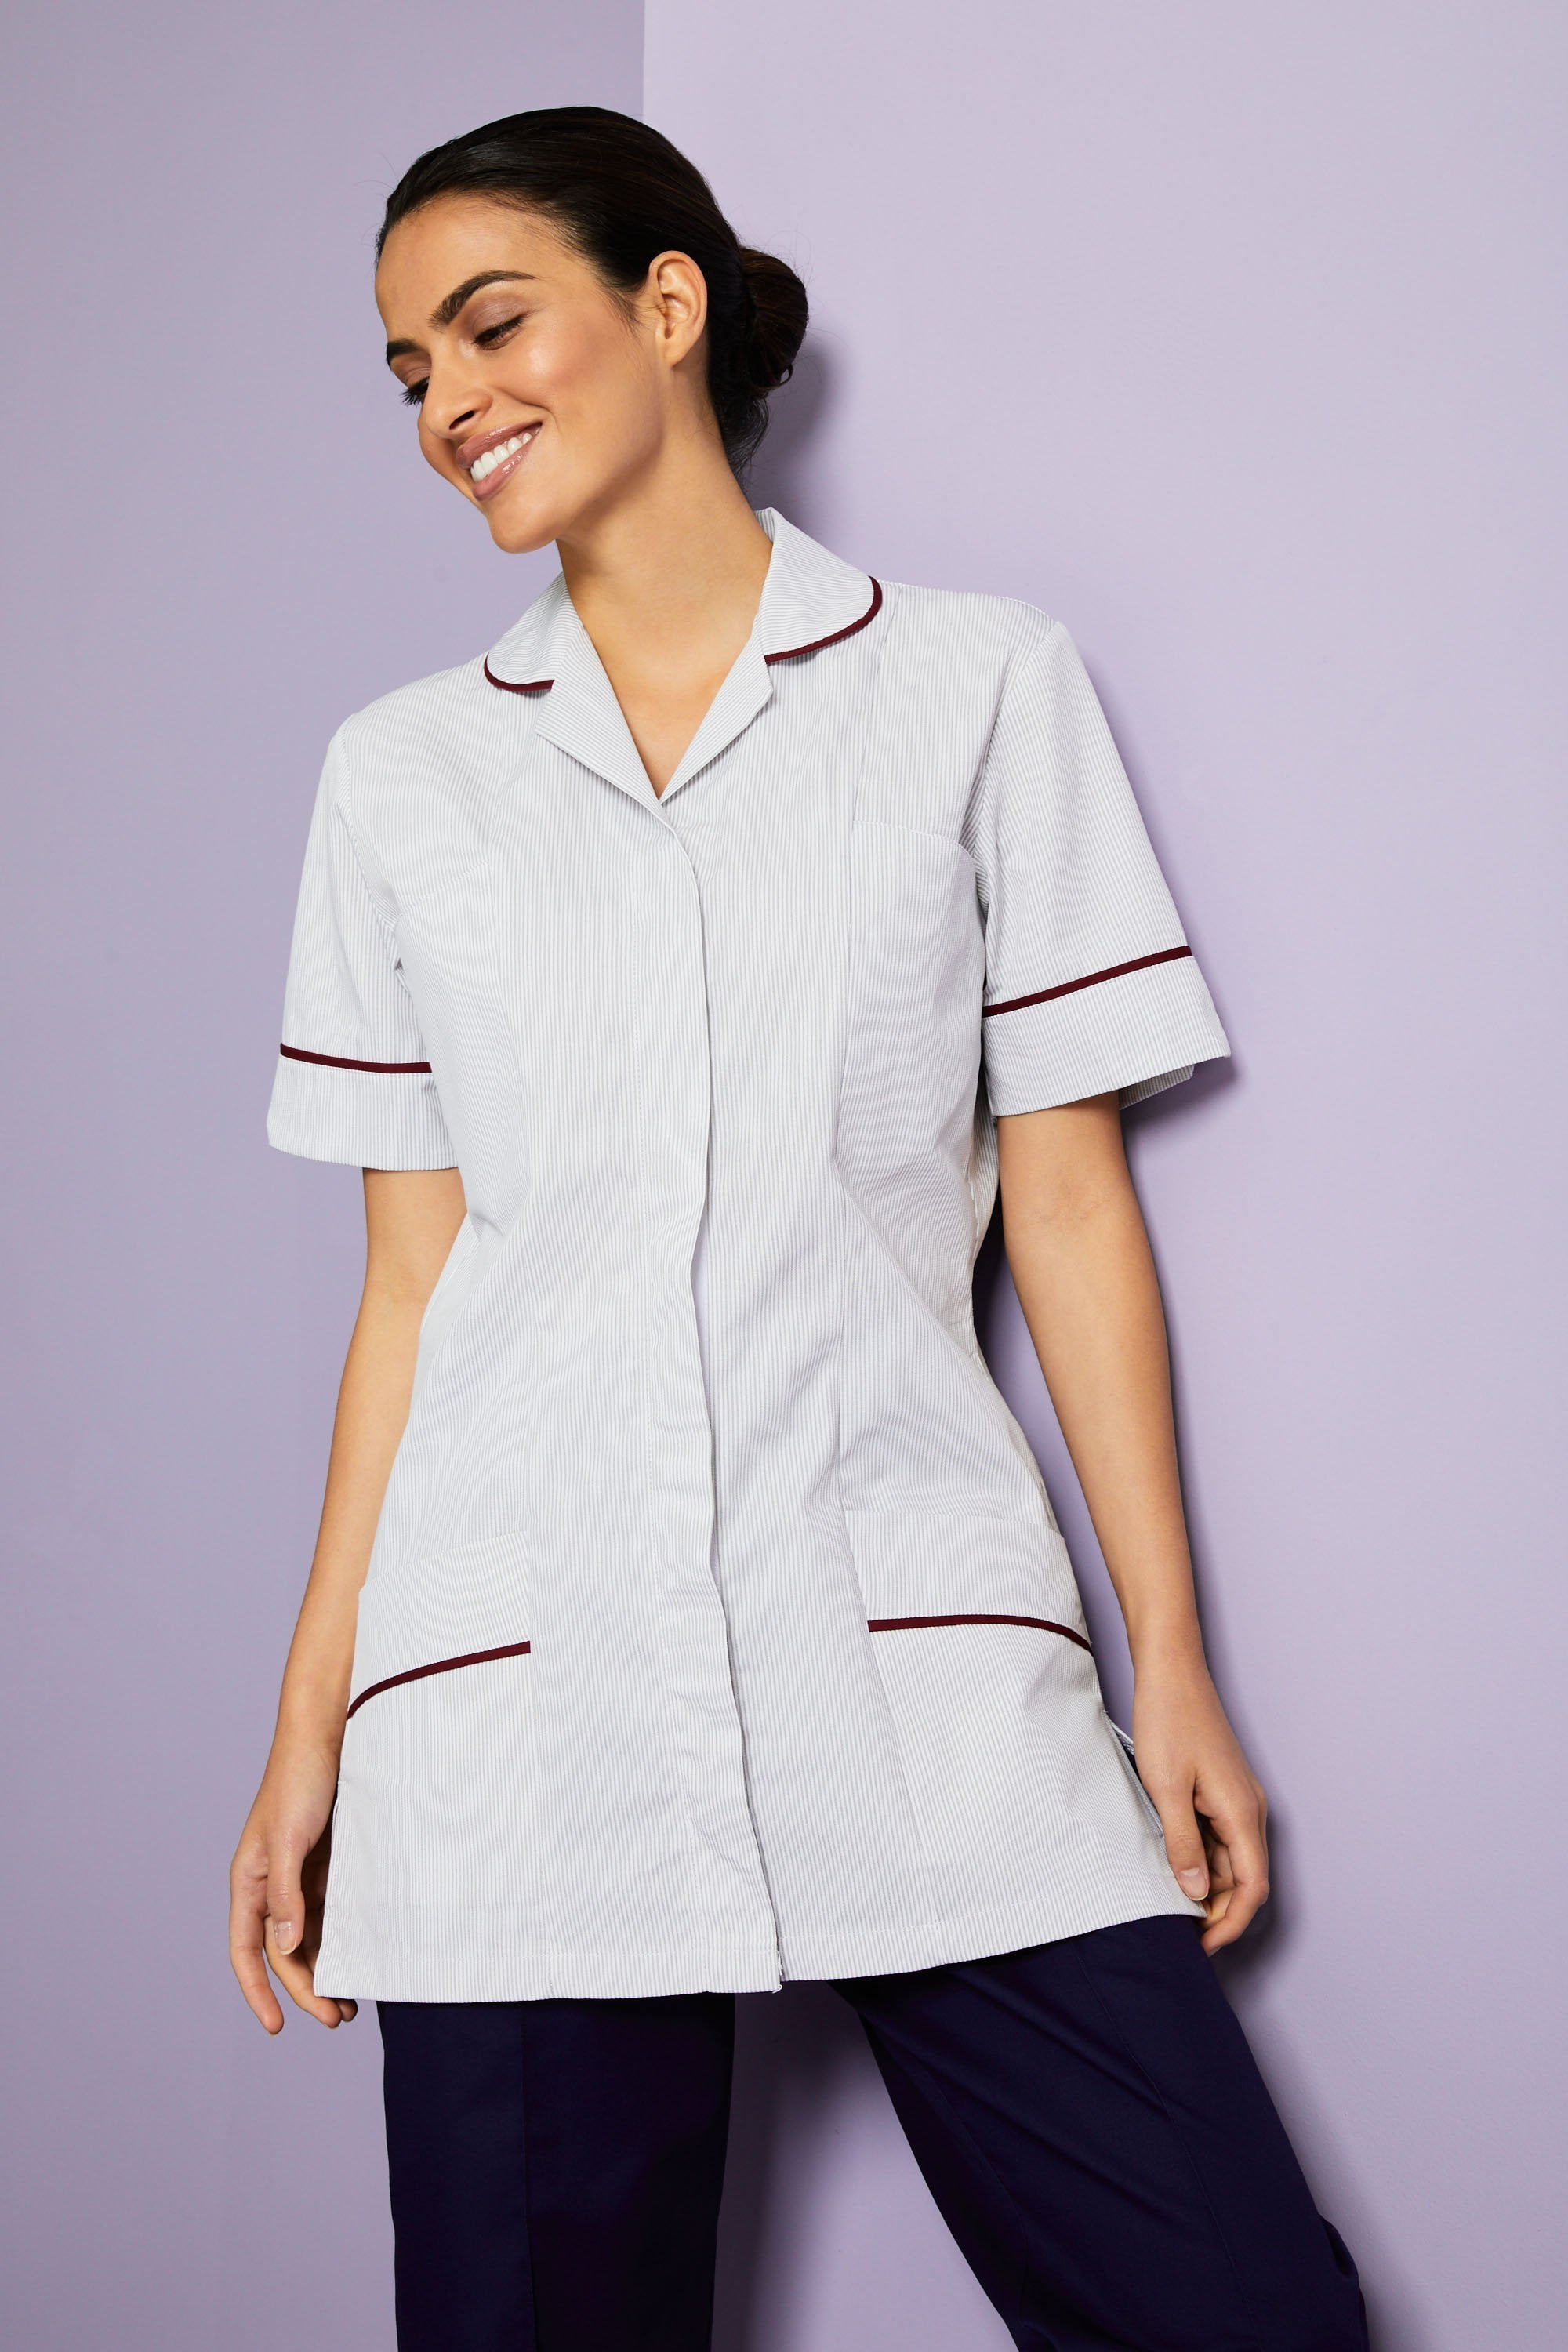 CLEANING Ladies Tunic Burgundy Stripe NURSES CARE HOME UNIFORM